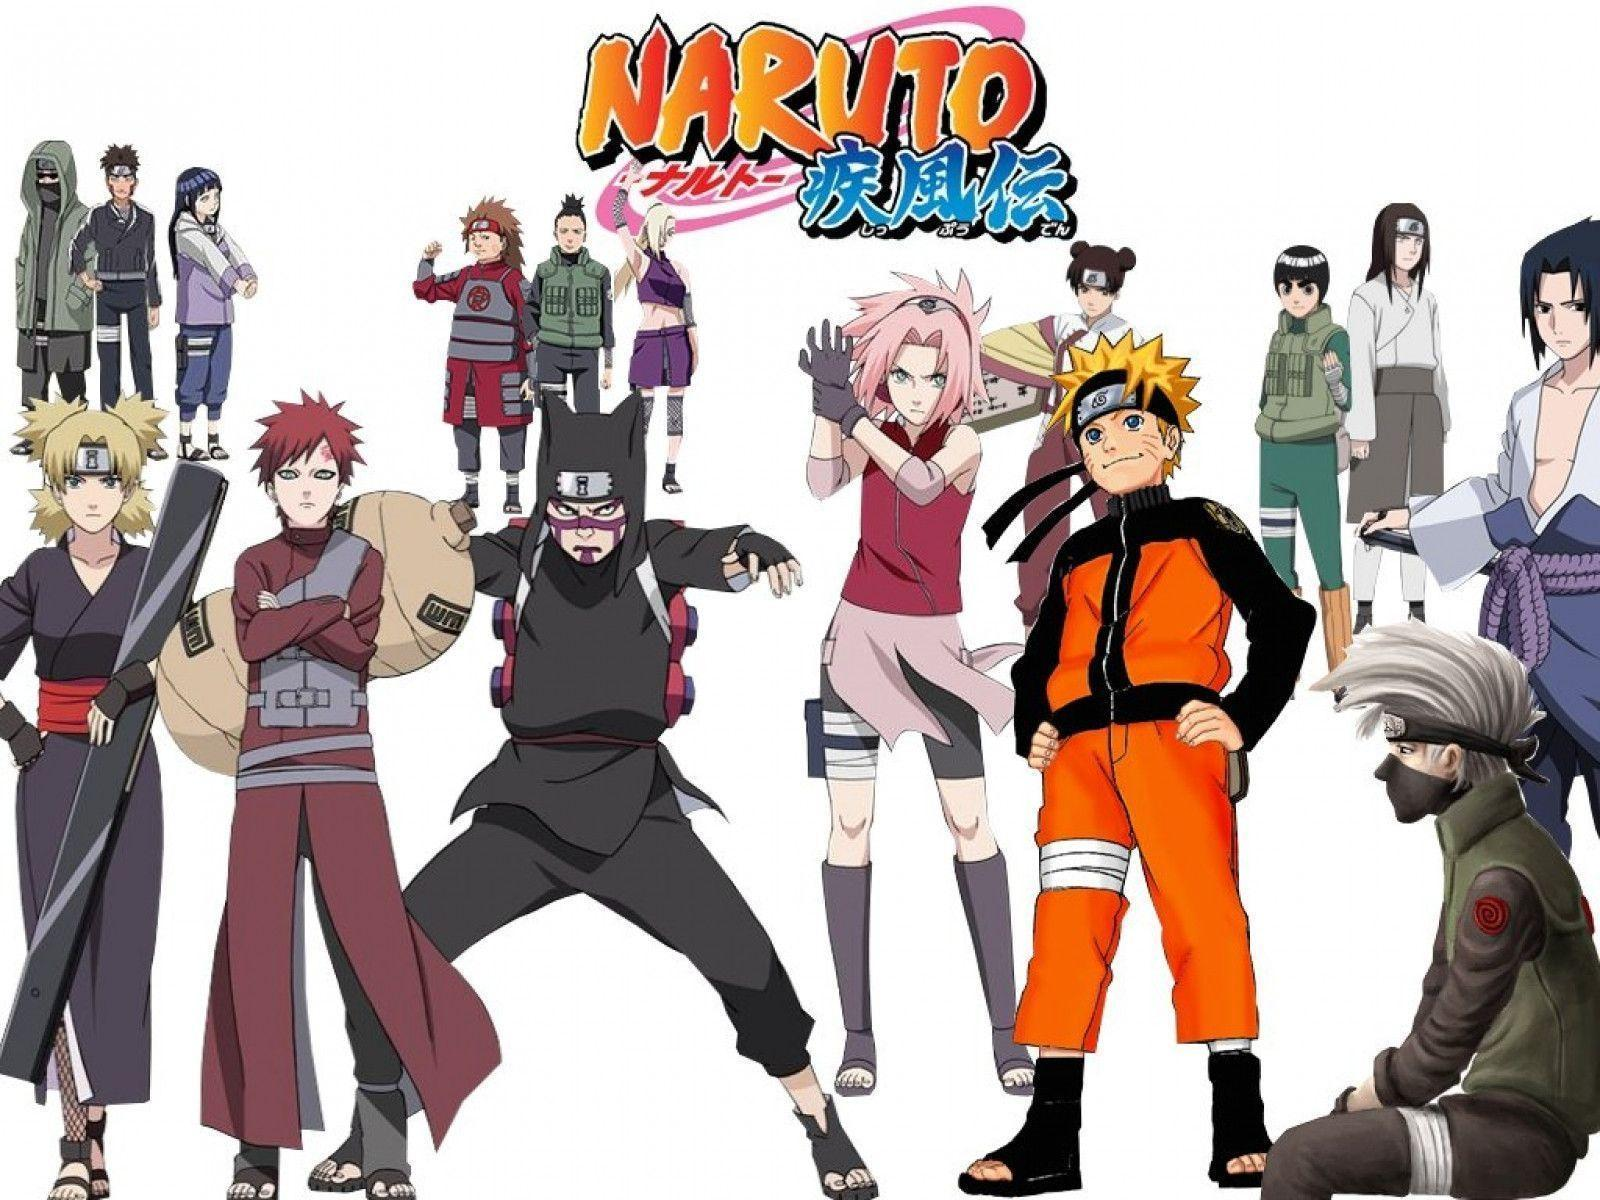 Naruto characters wallpapers wallpaper cave naruto characters wallpapers 39307 hd wallpapers pictwalls voltagebd Image collections